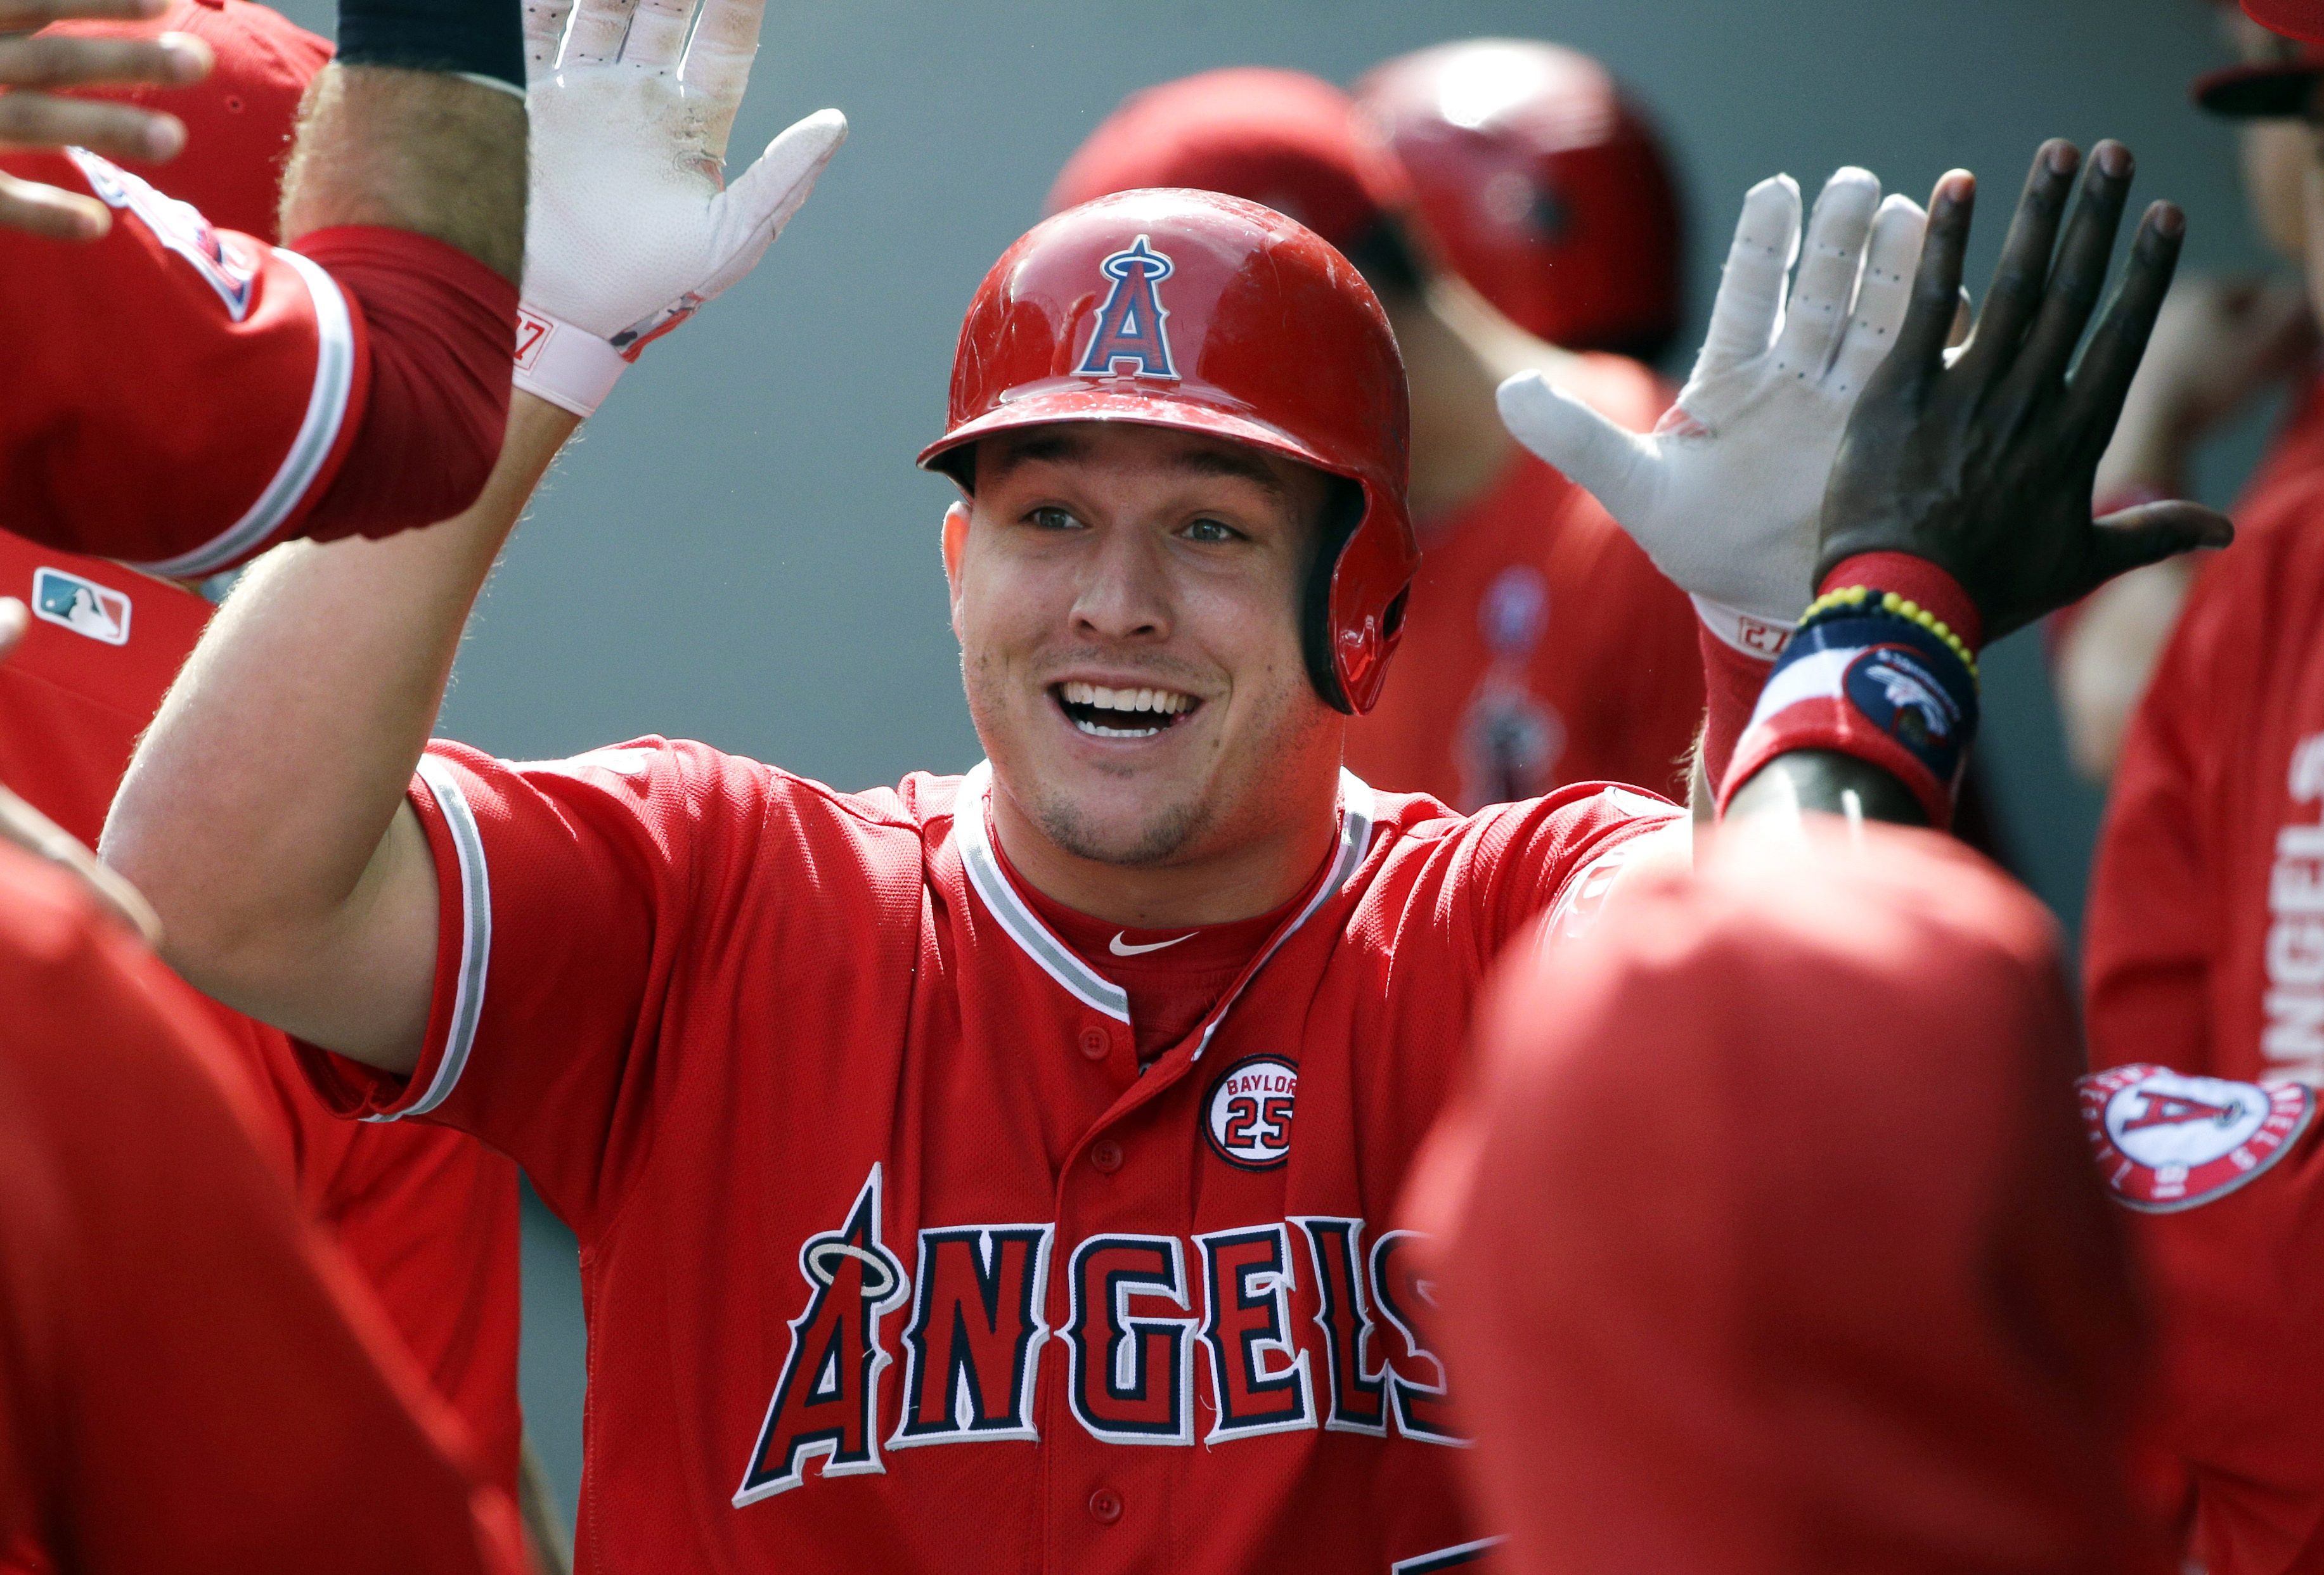 Cardinals players react to reports of Mike Trout's 12-year, $432 million deal